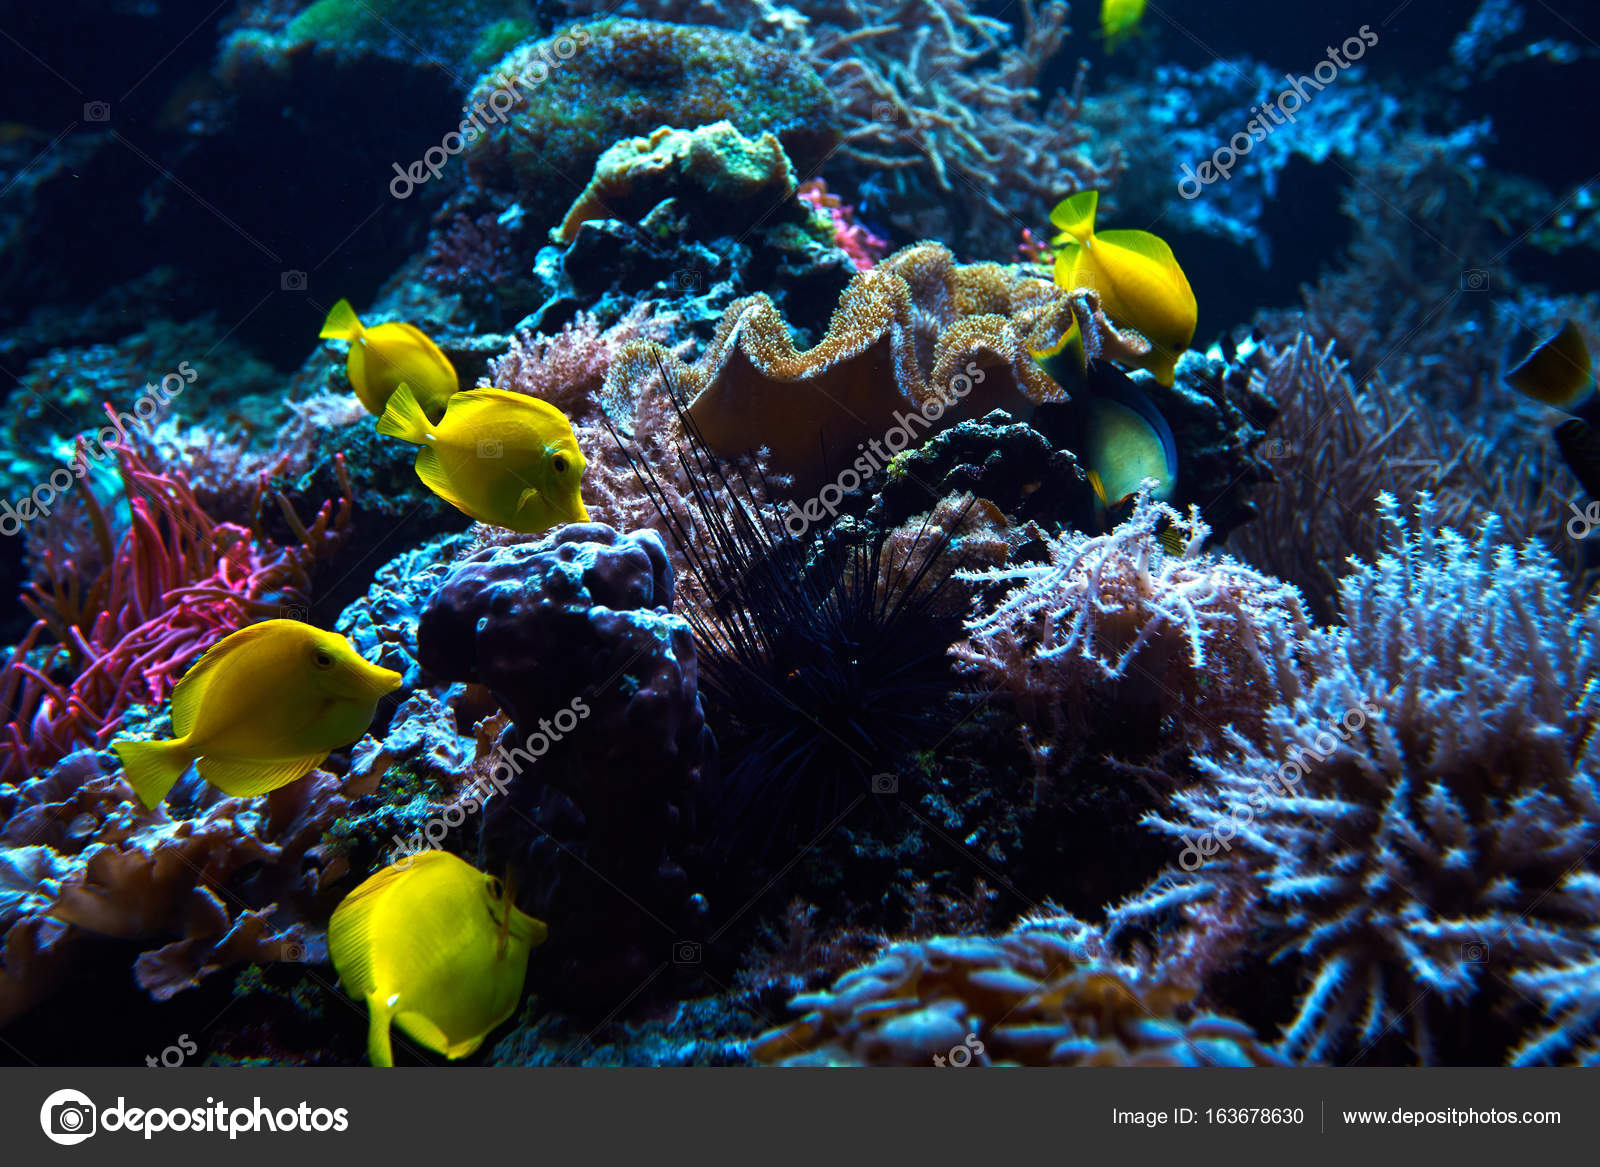 Underwater Coral Reef Landscape Garden With Tropical Fish Stock Photo